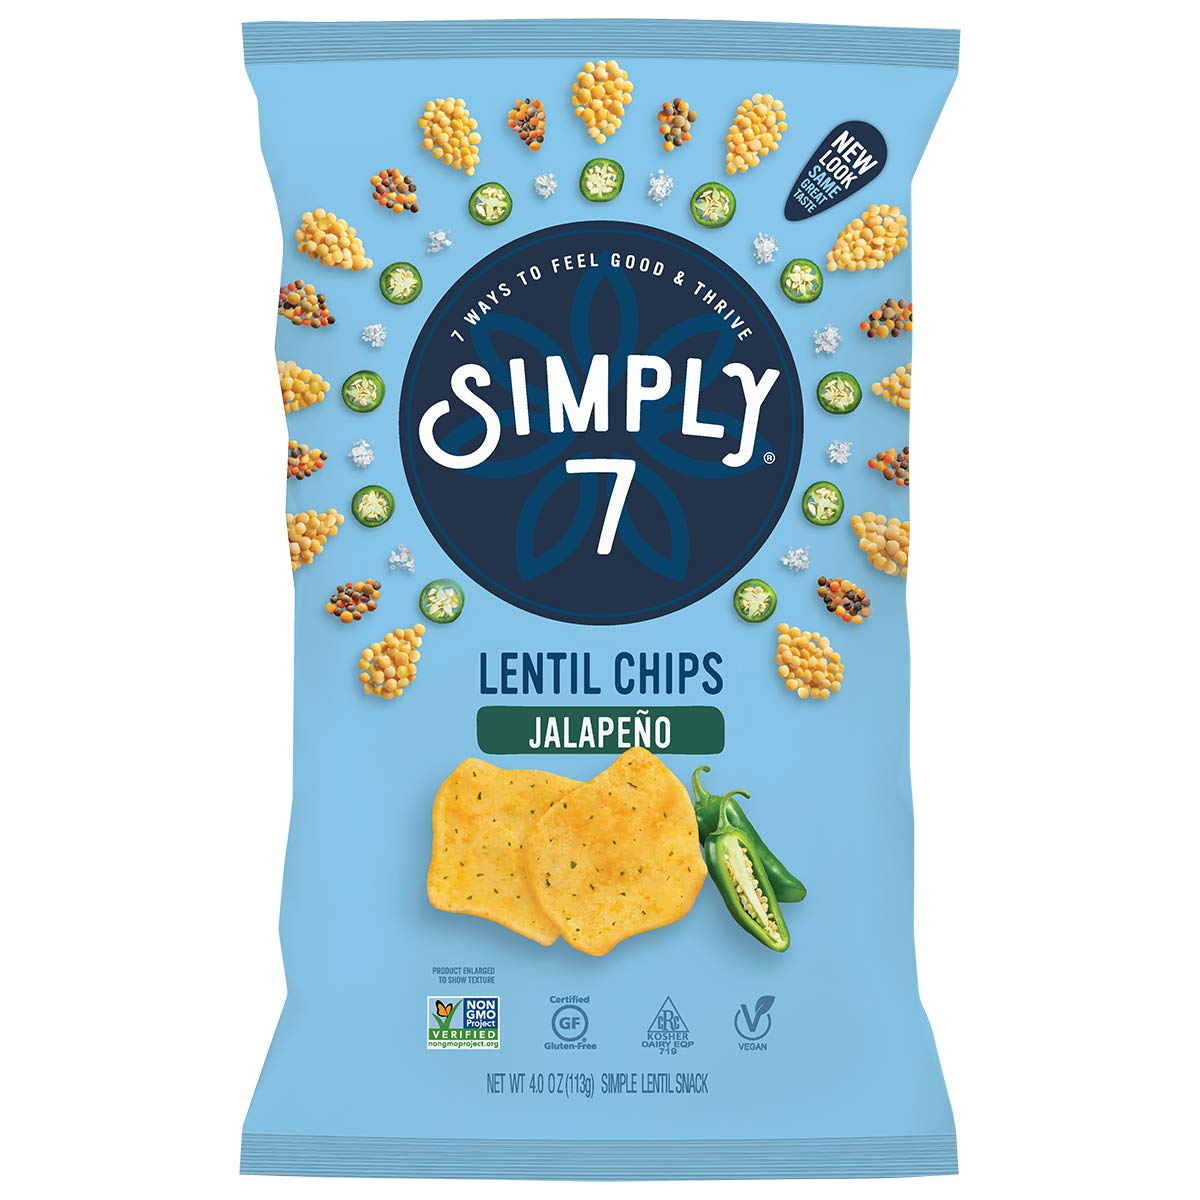 Simply 7 Lentil Chips, Jalapeno, Packaging May Vary, 4 Oz